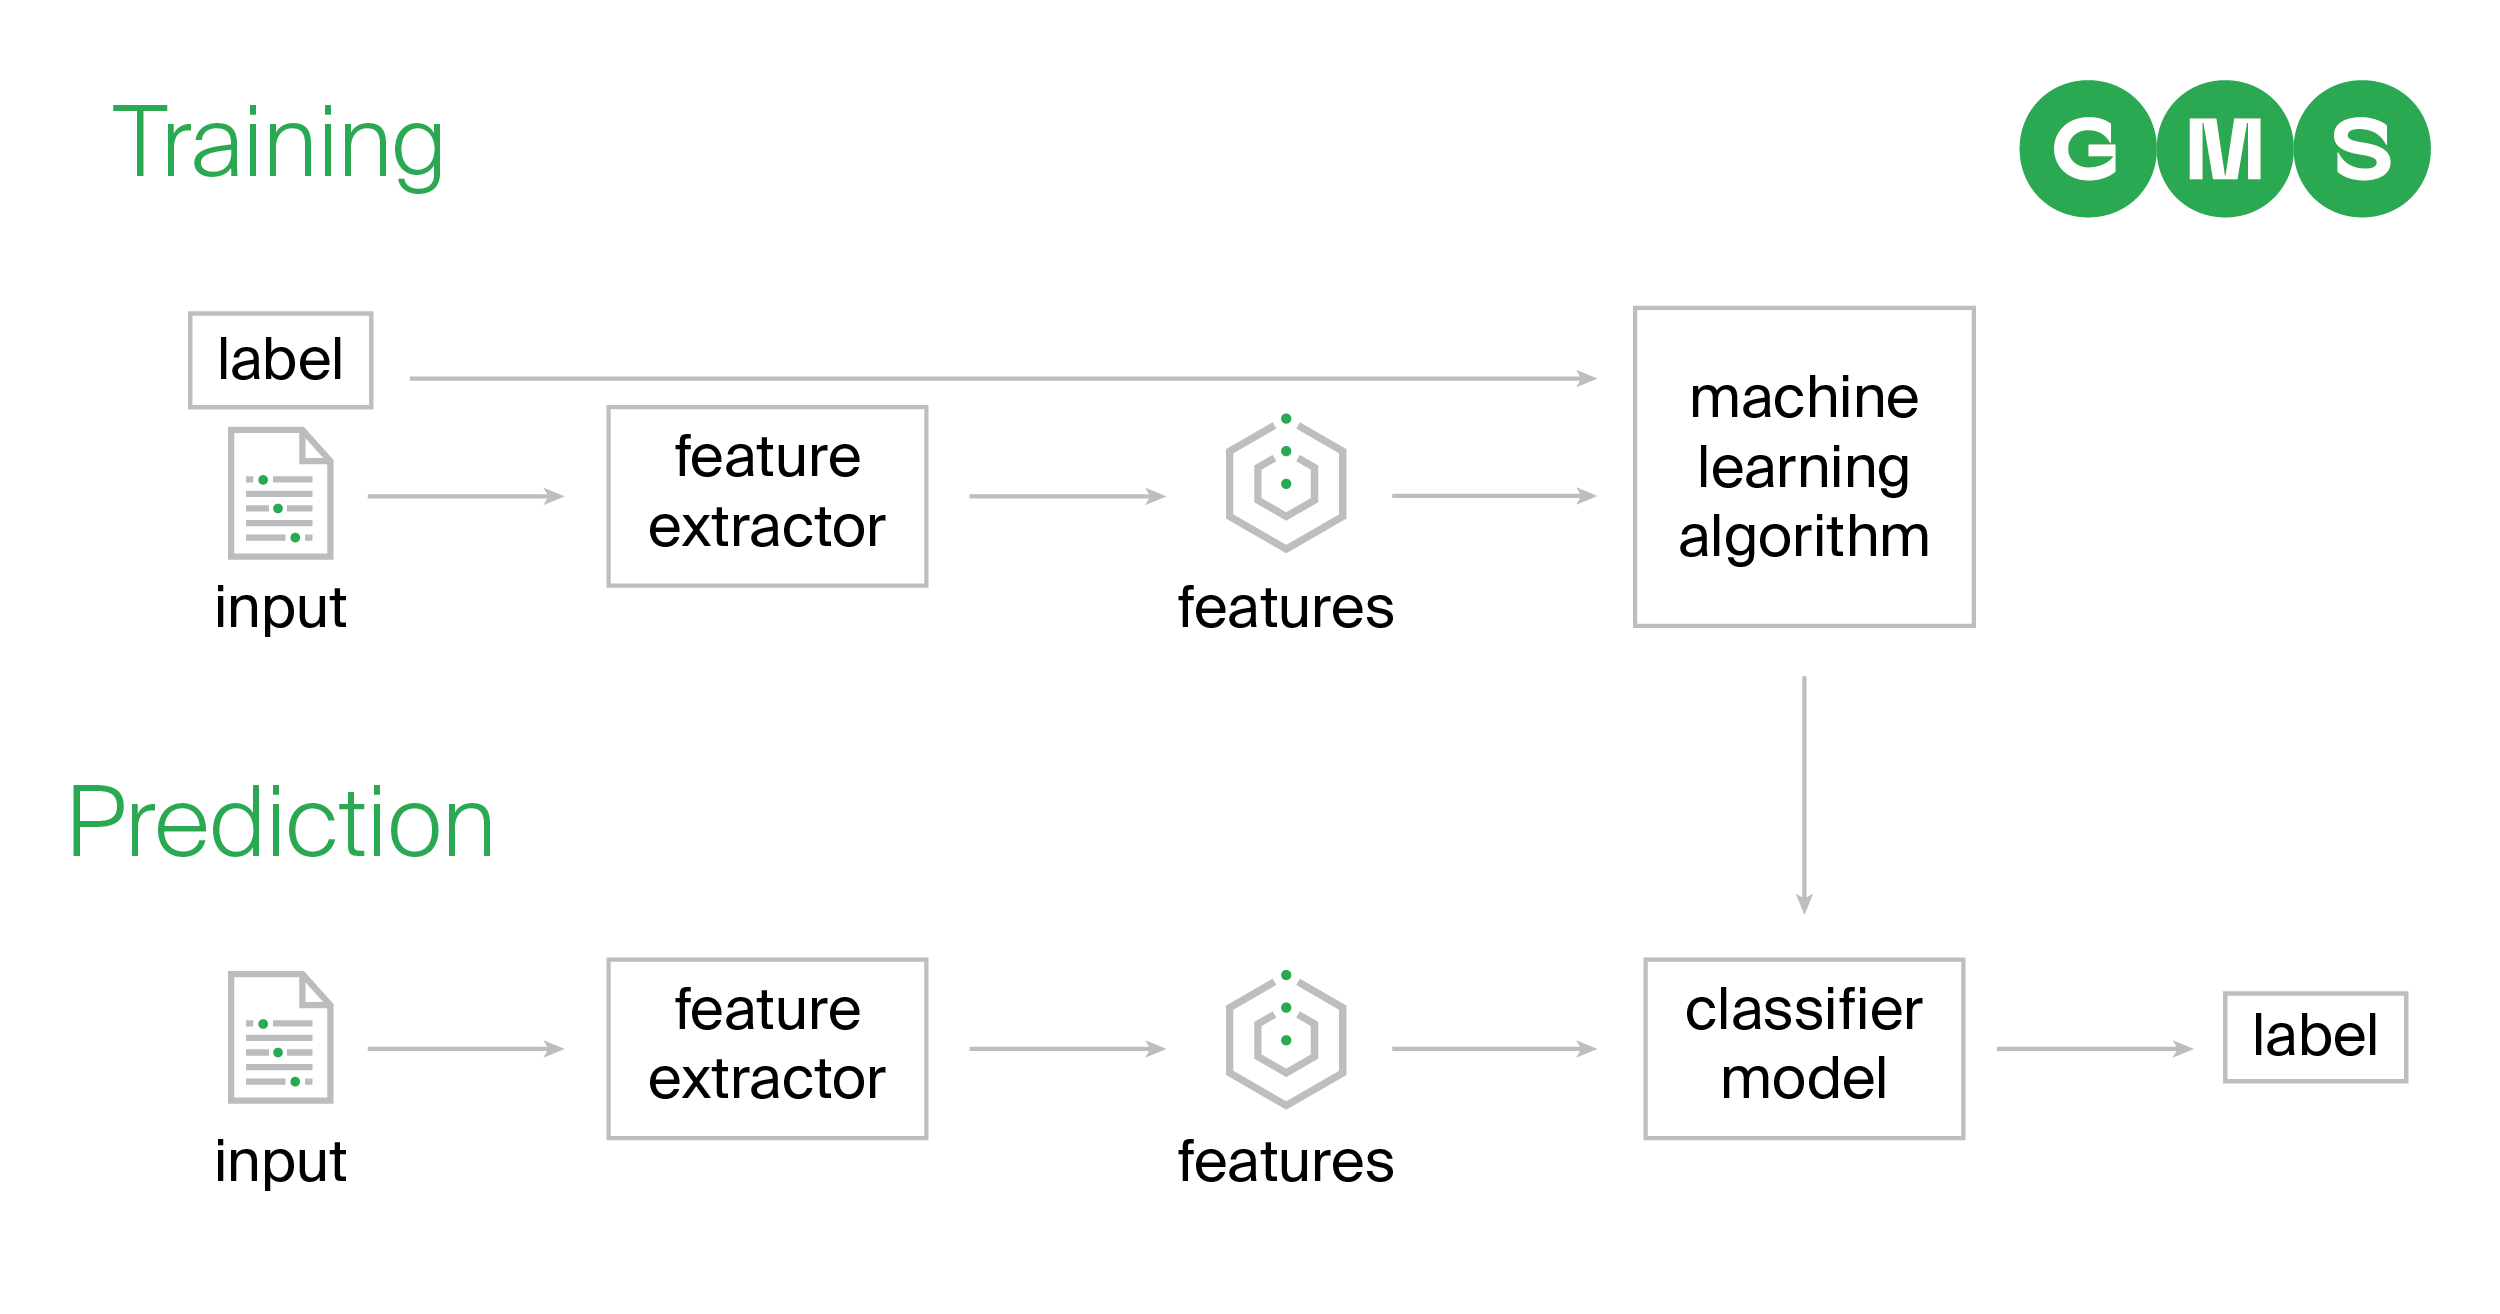 Training a neural network - teaching a machine to label features | GMS on Machine Learning for mobile operators